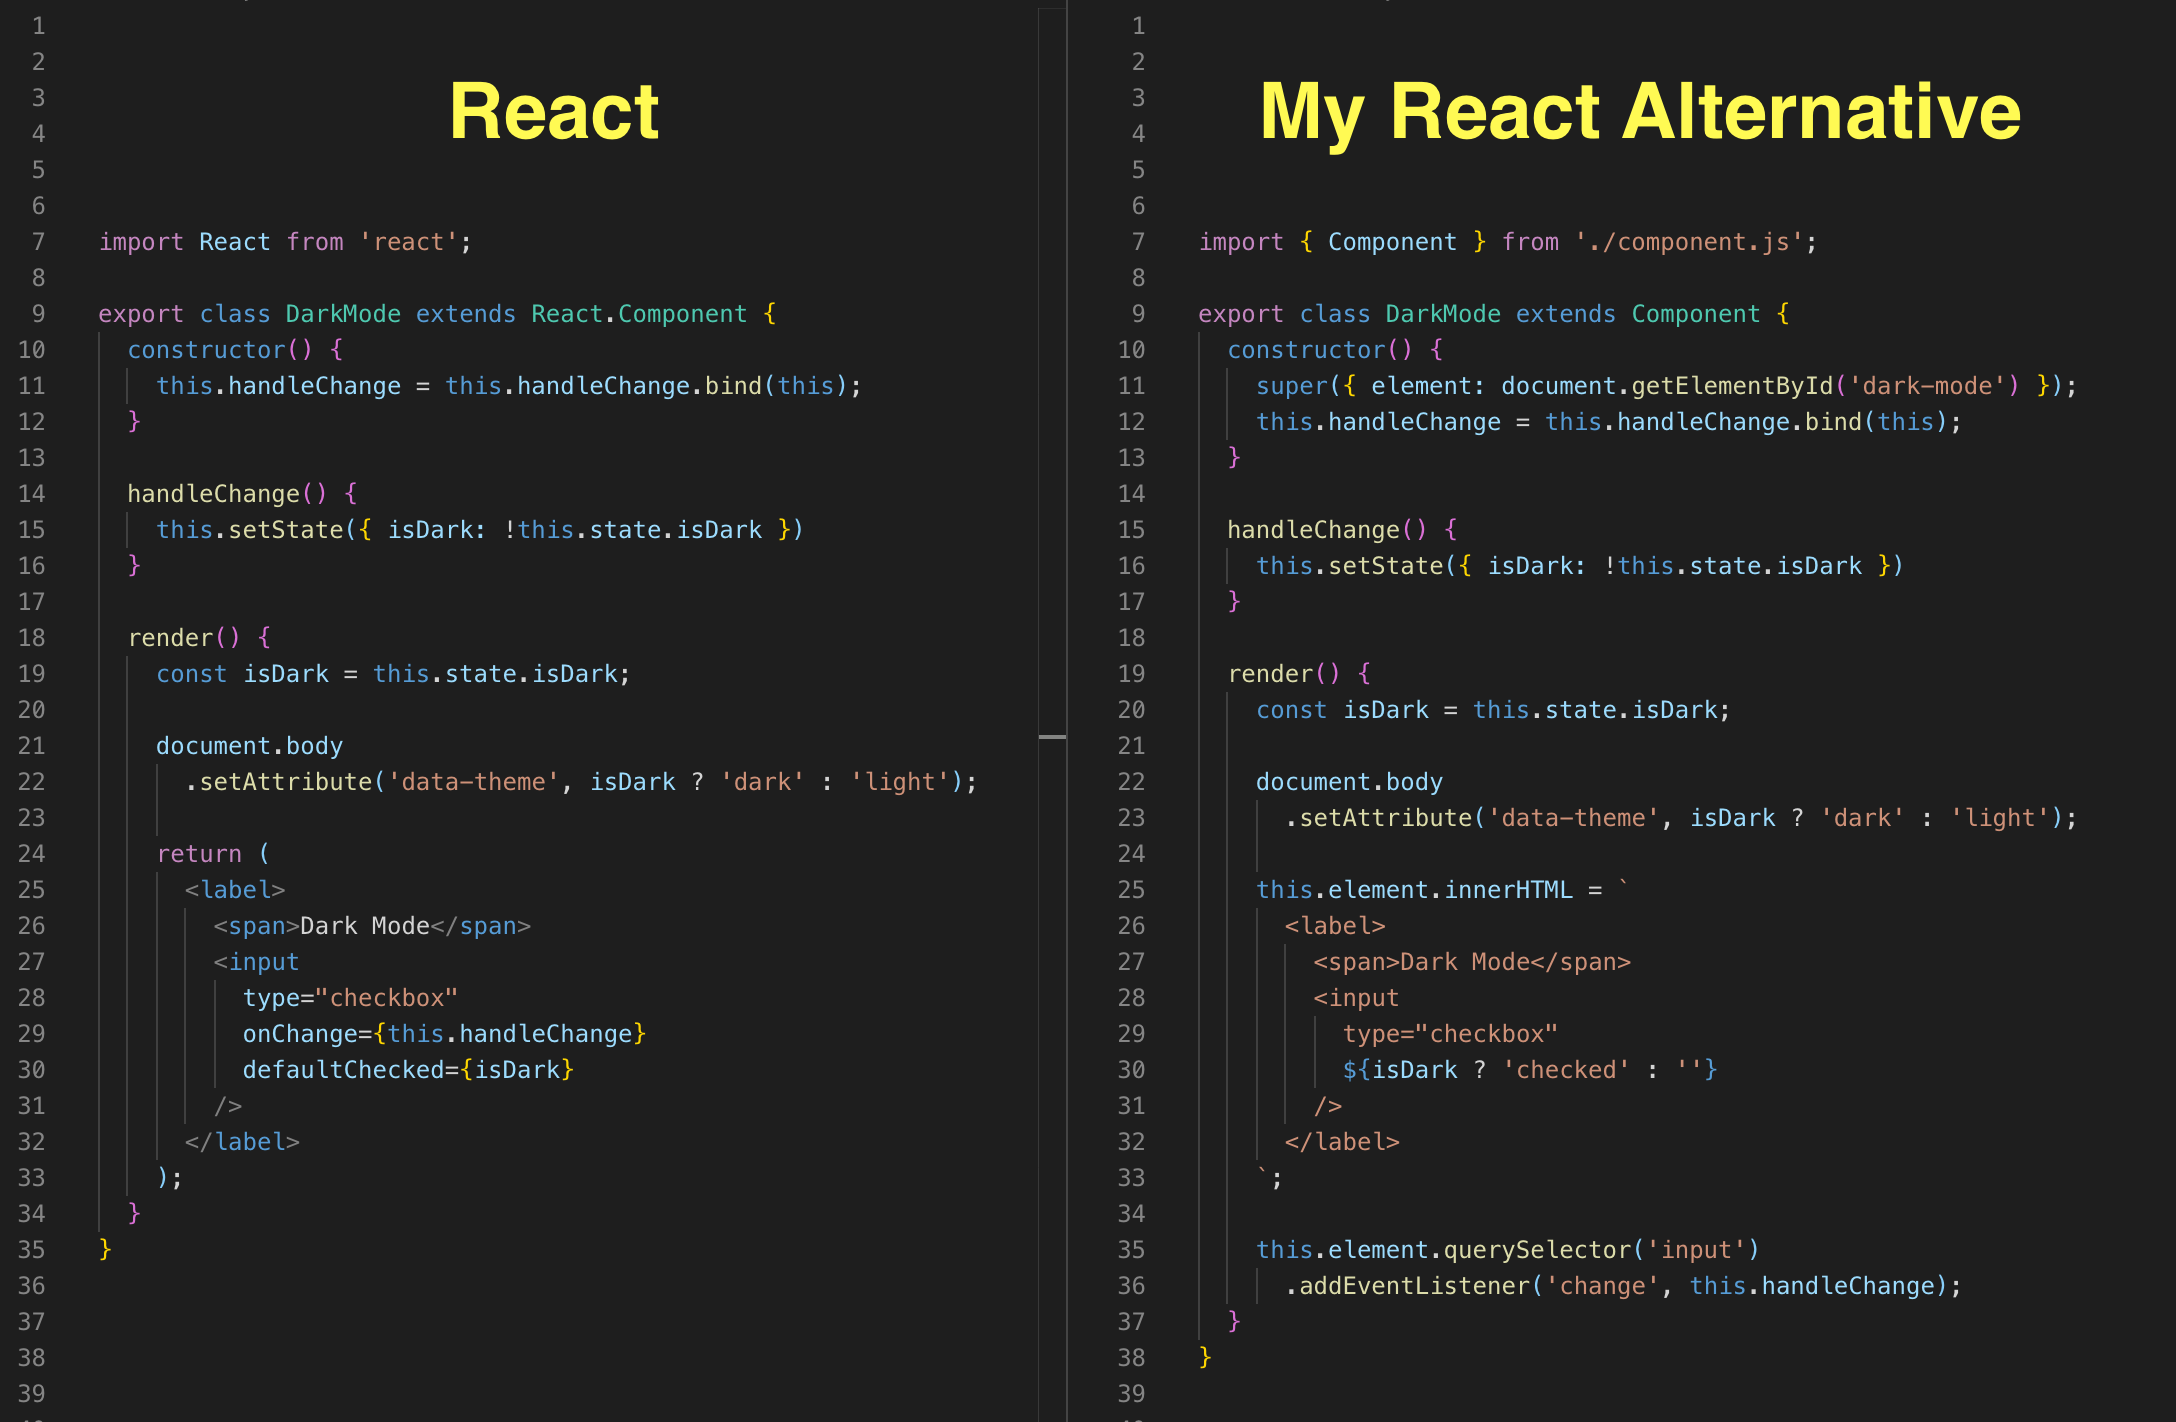 A split-screen comparing the code of a React component to a React-alternative component.